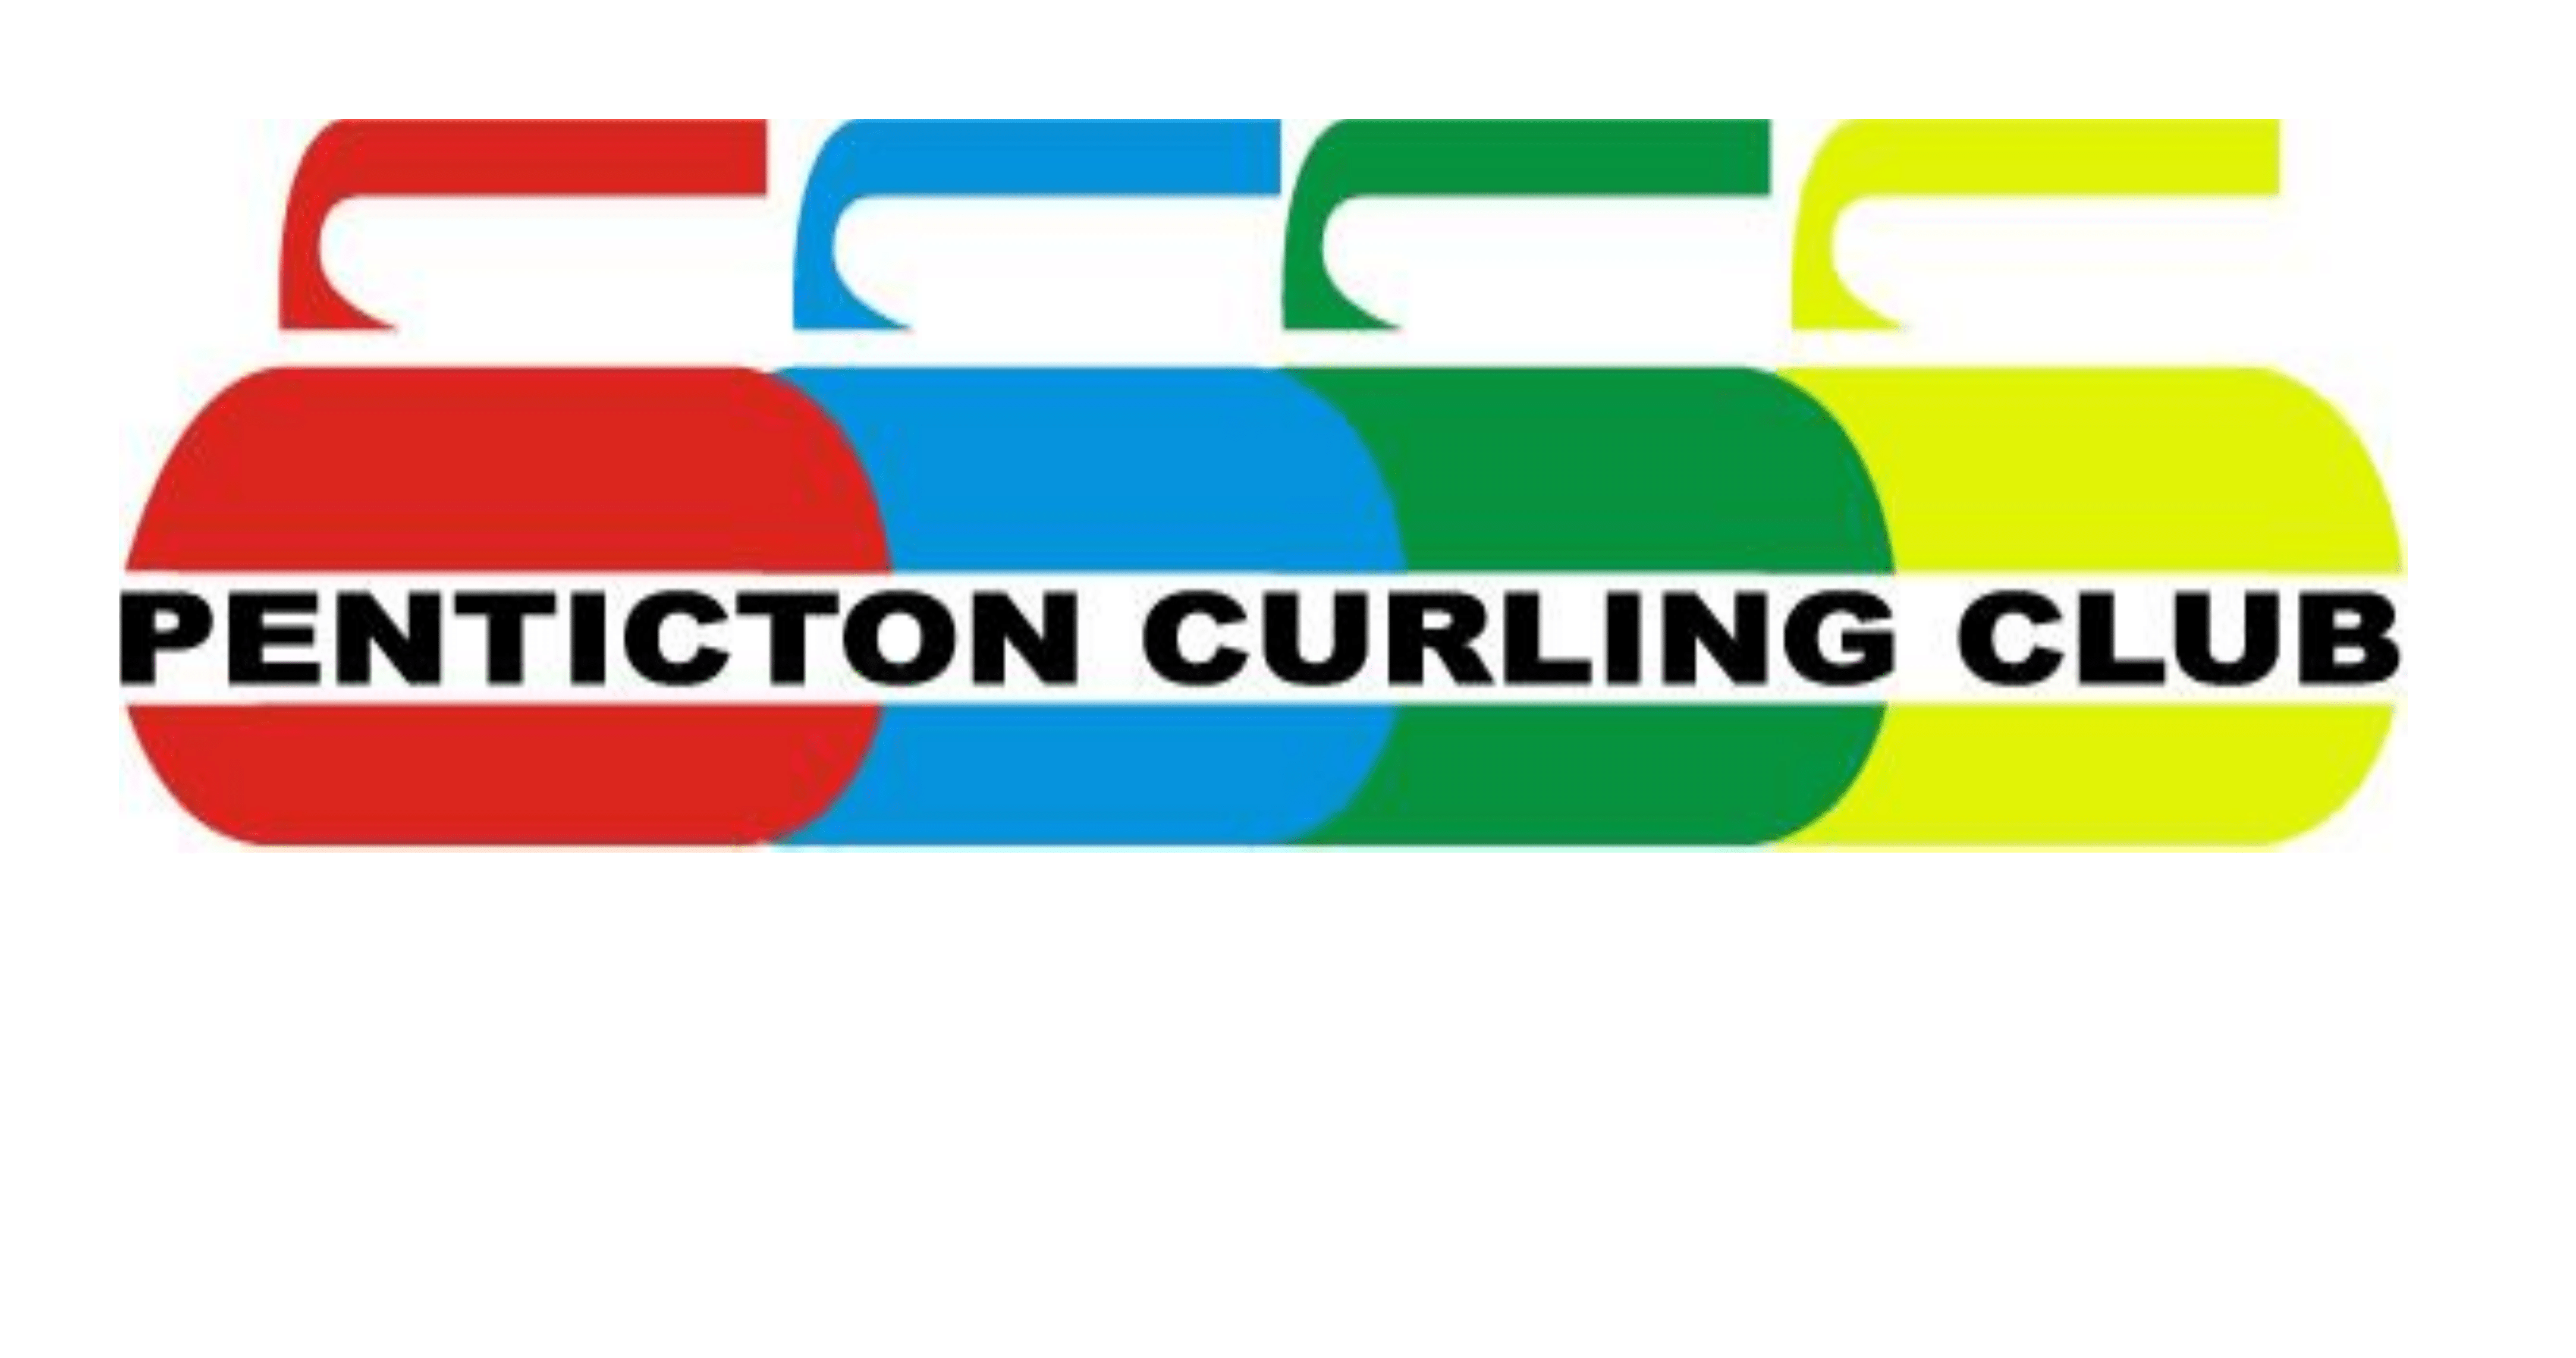 Penticton Curling Club